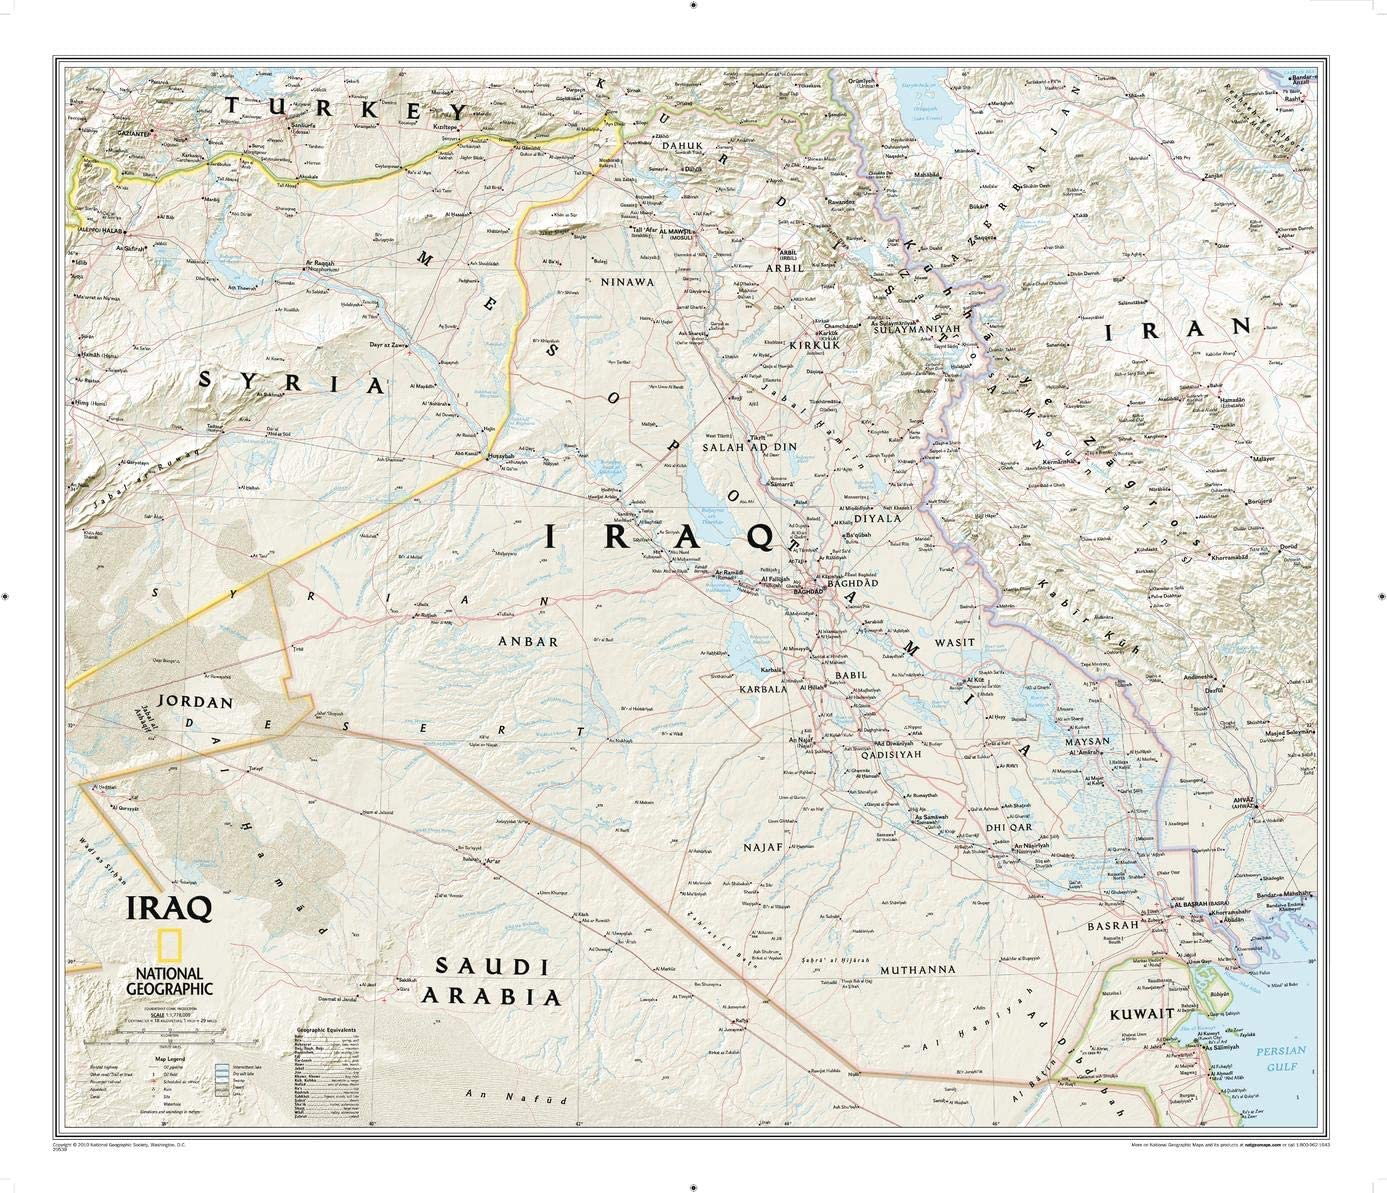 National New sales Chicago Mall Geographic: Iraq Classic Wall Map inche - 28.25 x 24.25